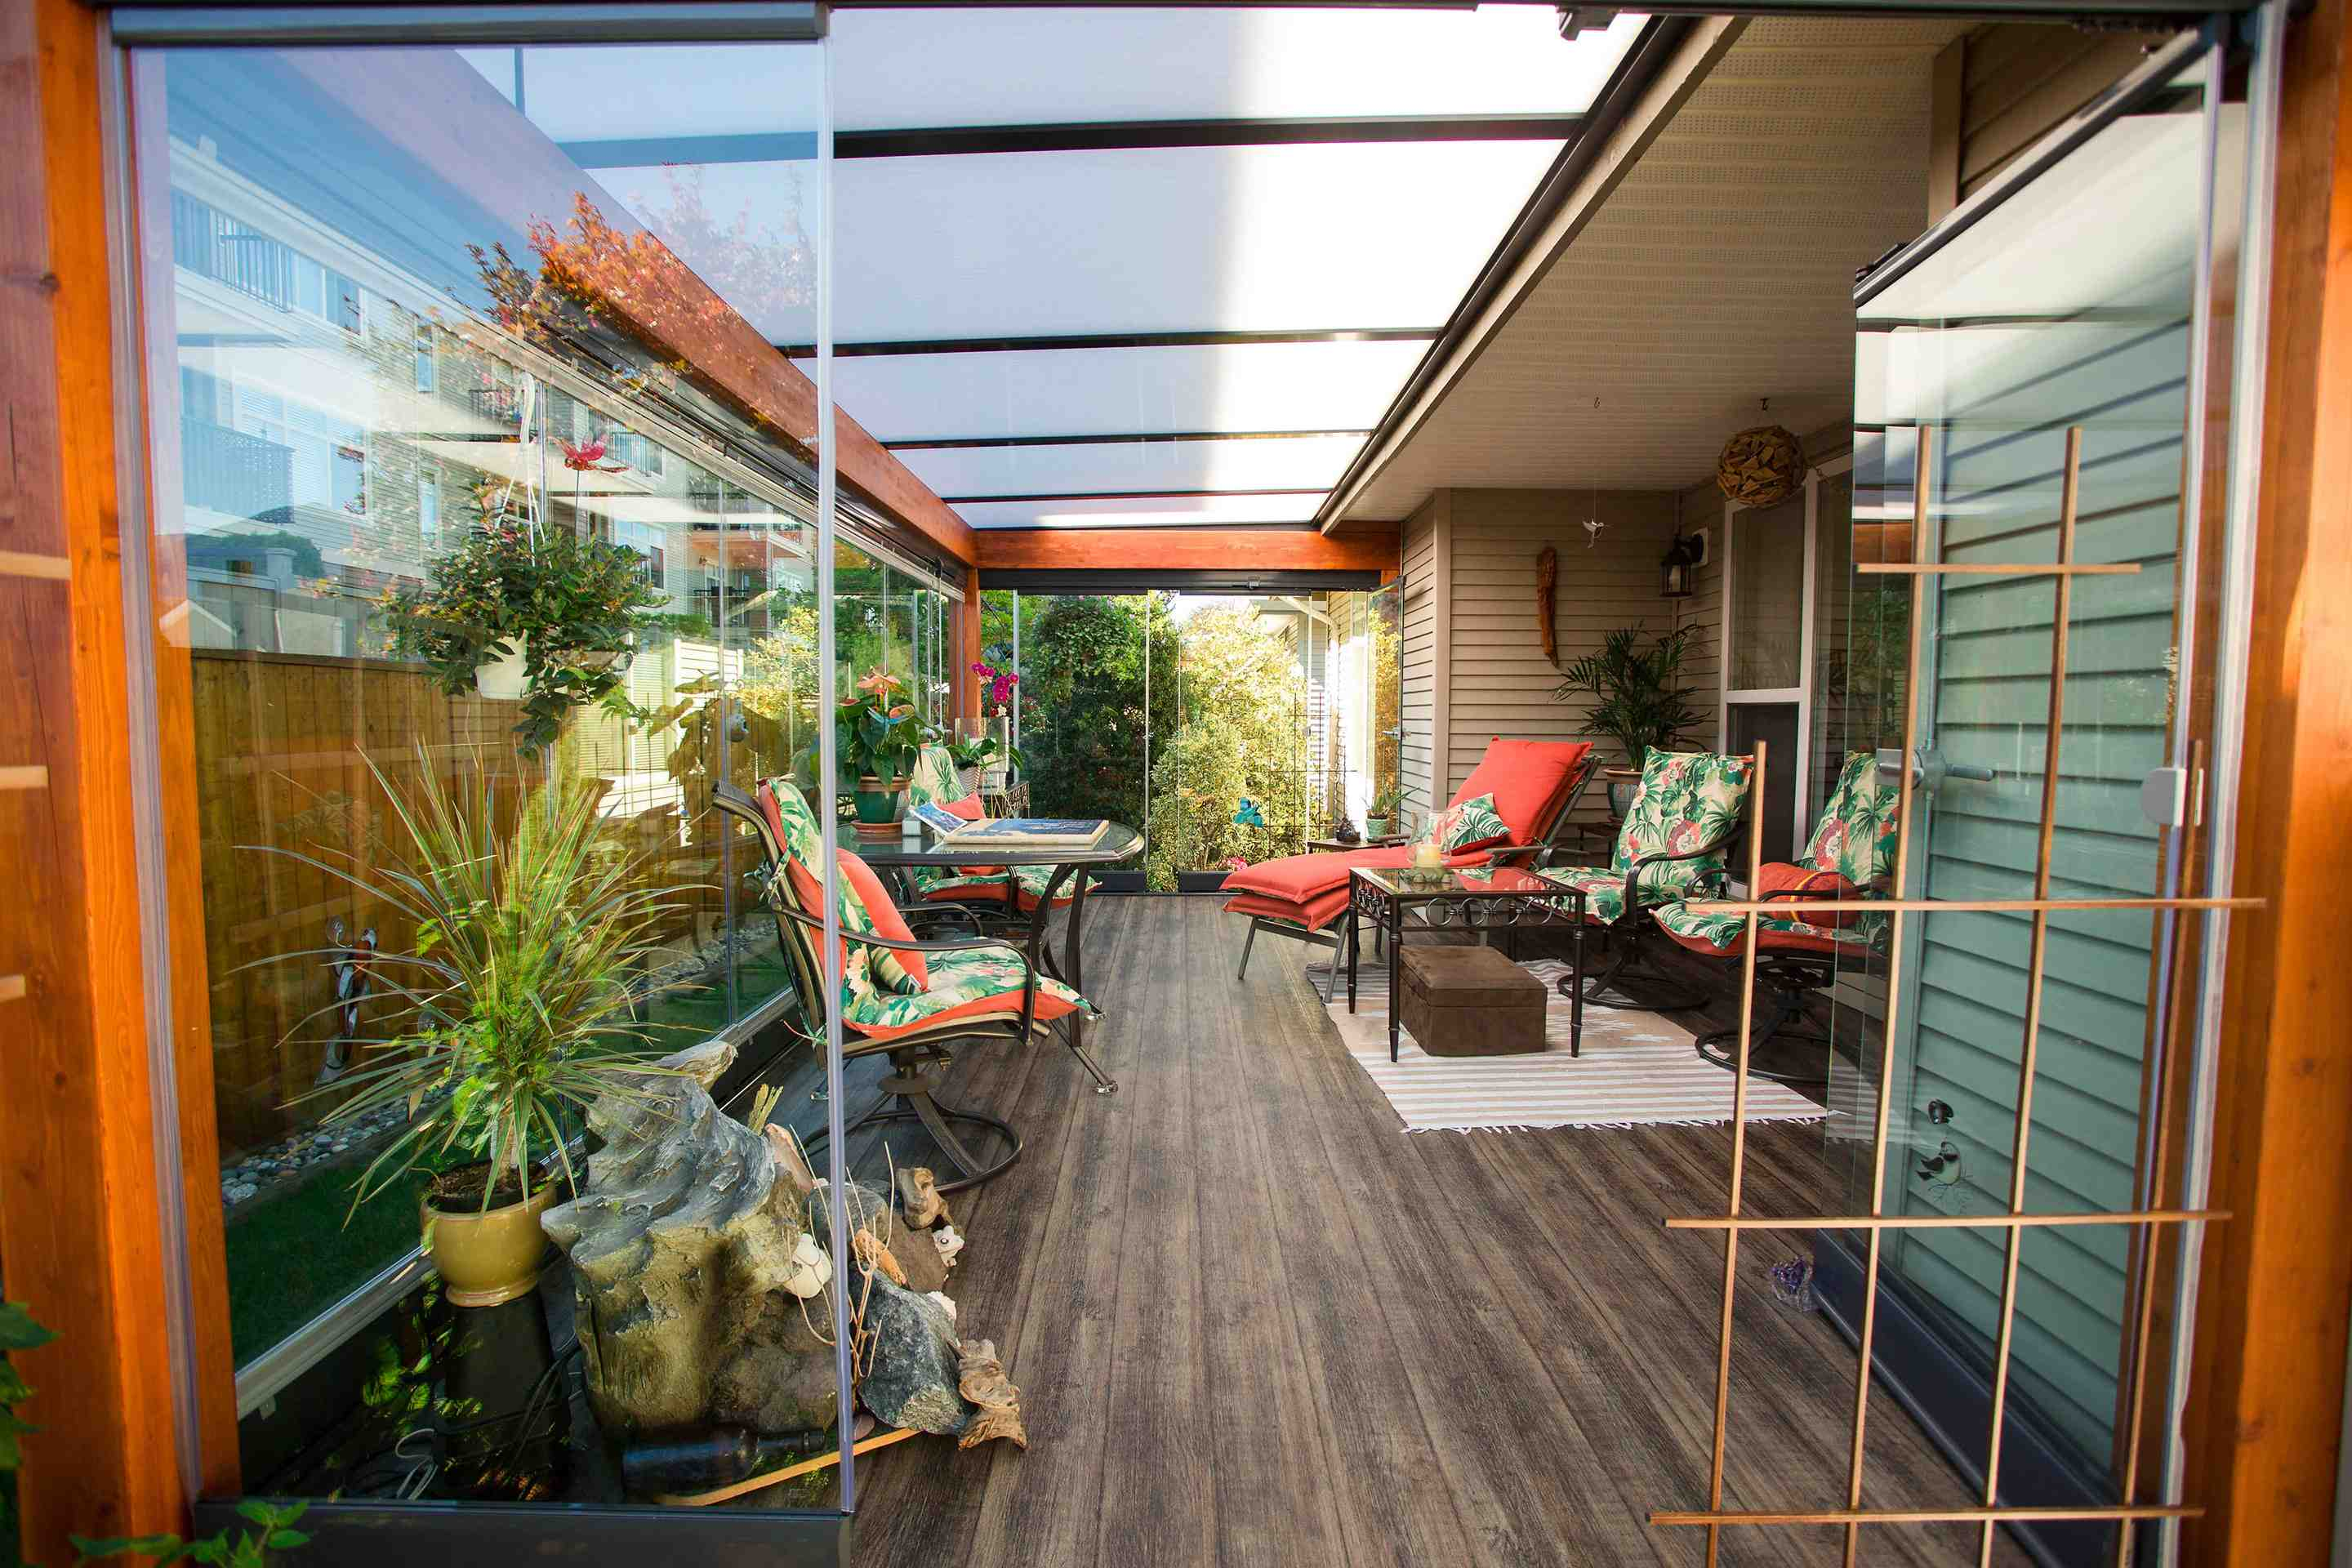 sunroom toronto, sunroom hamilton, sunroom vancouver, sunroom cambridge, sunroom kitchener, sunroom gta, sunroom stoney creek, sunroom bc, retractable glass wall, glass, patio cover toronto, patio cover hamilton, patio cover vancouver